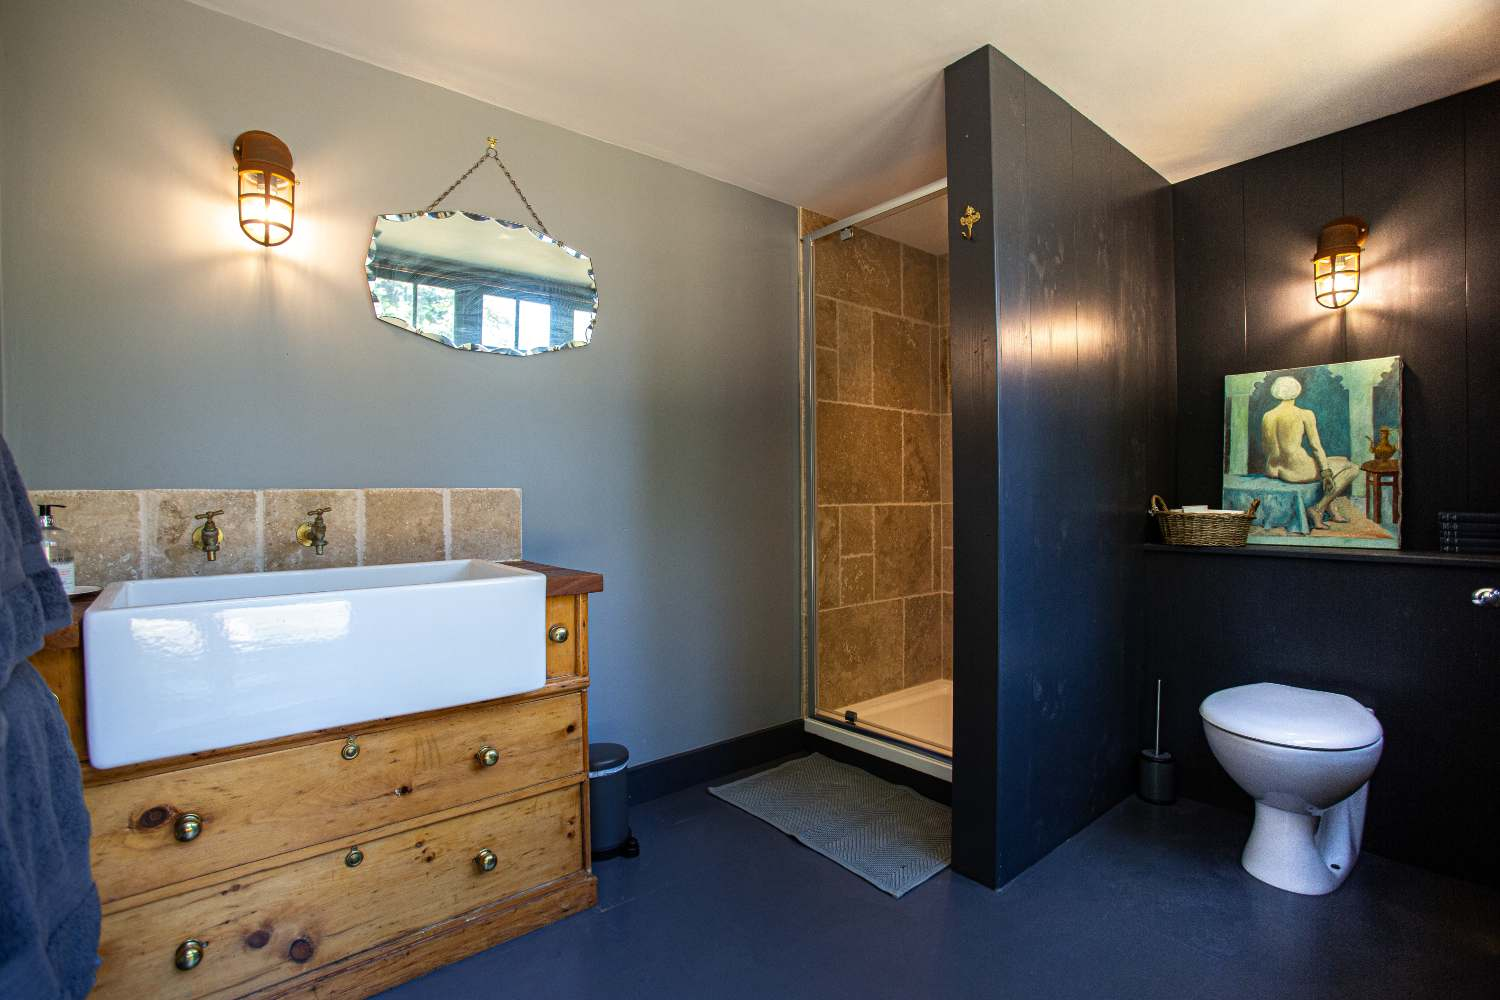 Bathroom with power shower in adjacent barn, a few seconds walk away.